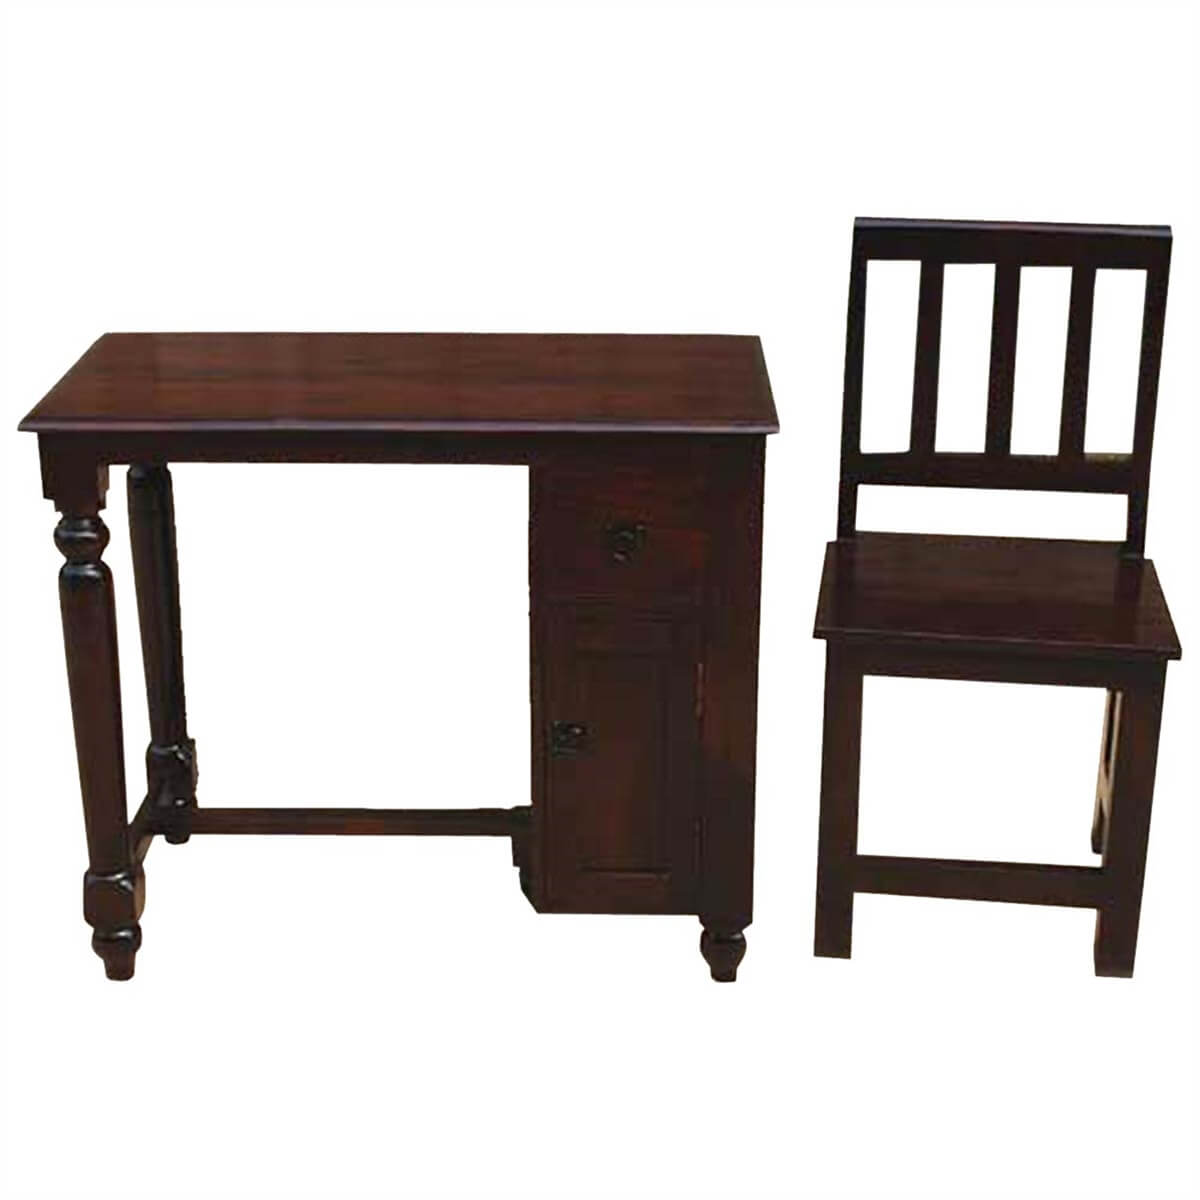 solid wood writing desks Amish handmade solid wood writing desk for your home, office, restaurant, or nursery made-to-order in the solid wood of your choice.